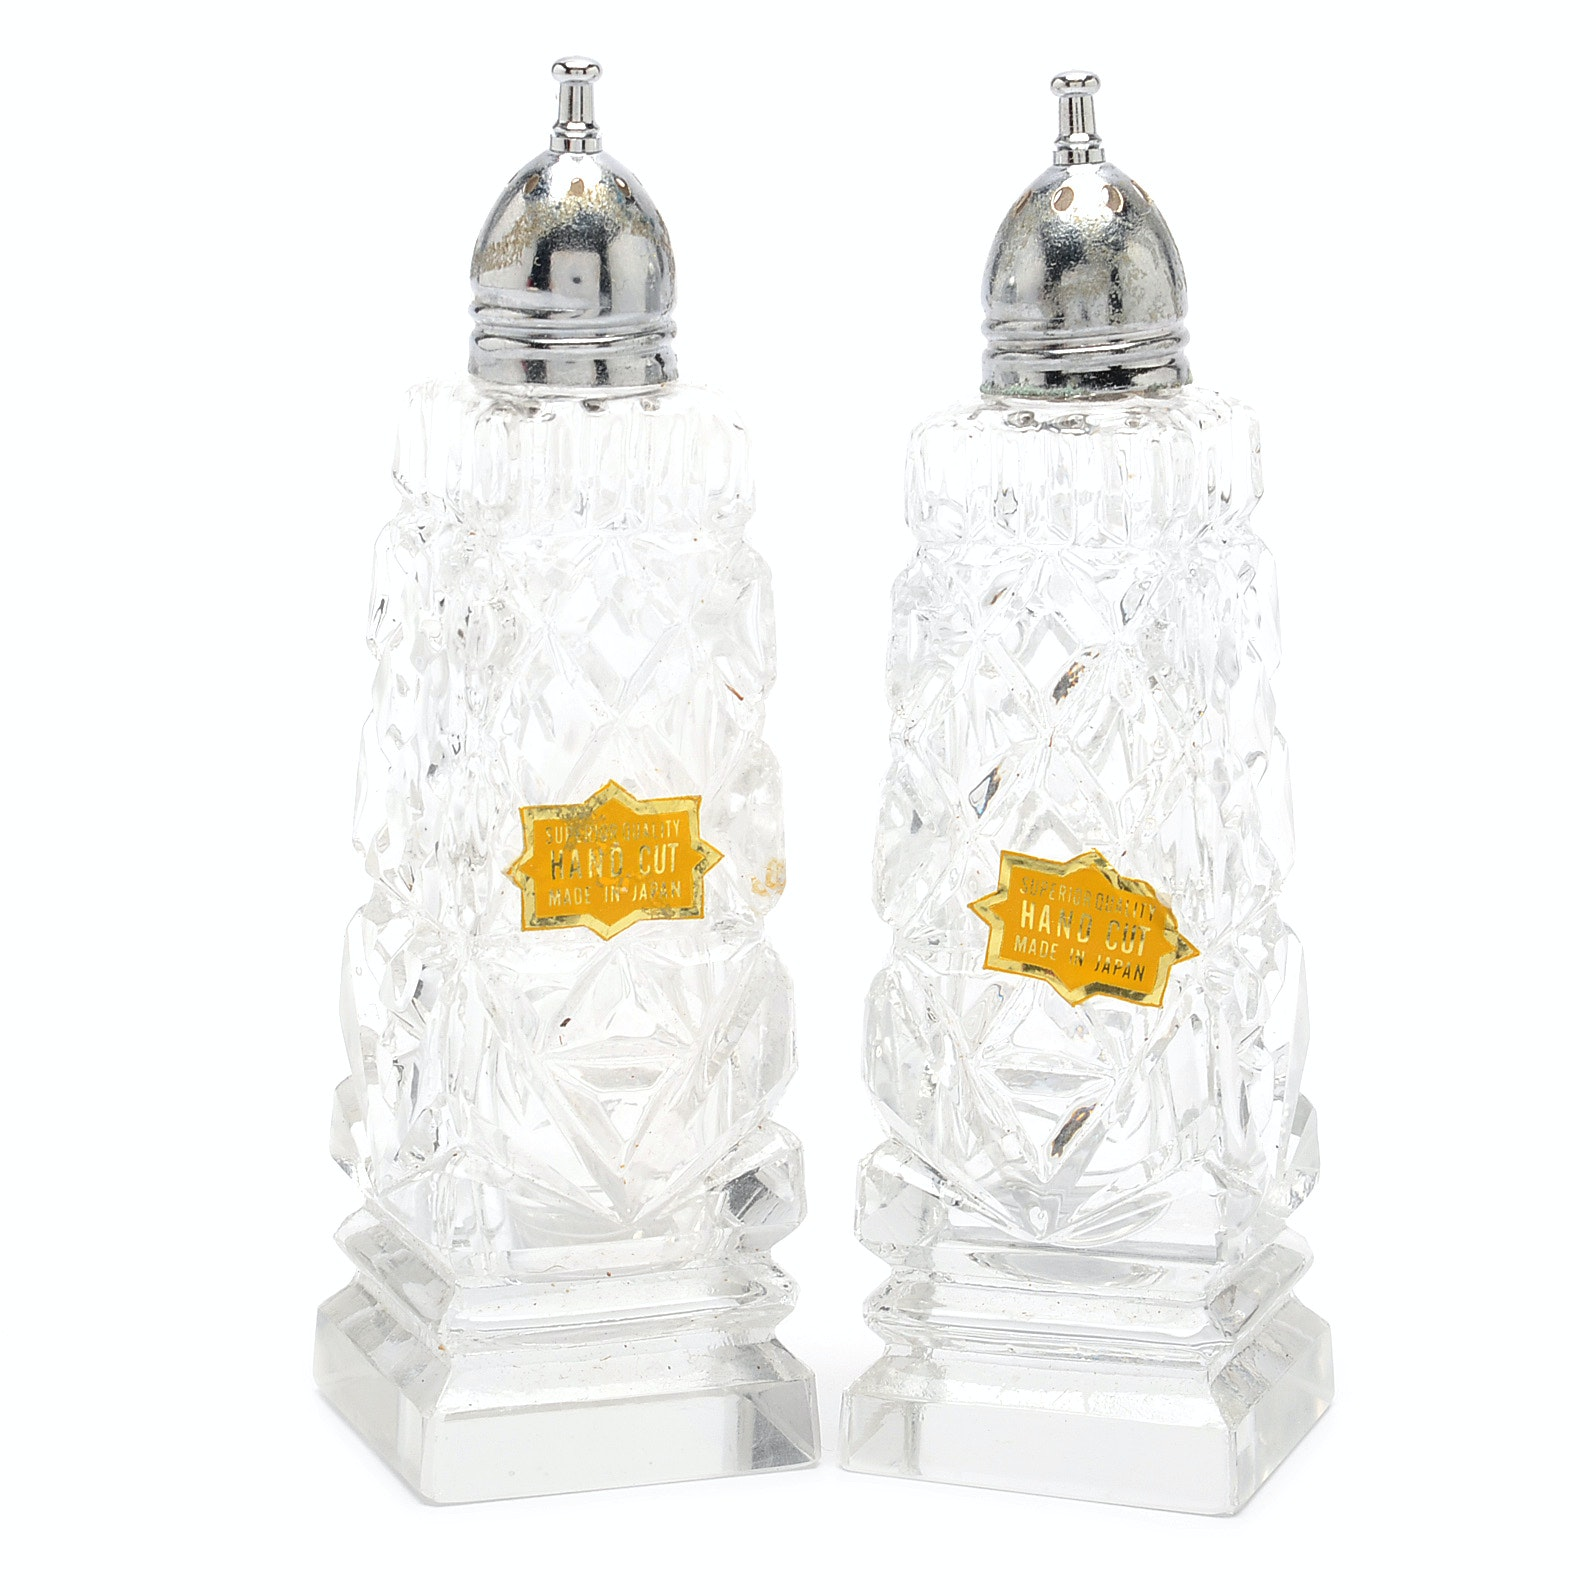 Vintage Hand-Cut Glass Japanese Salt and Pepper Shakers With Box